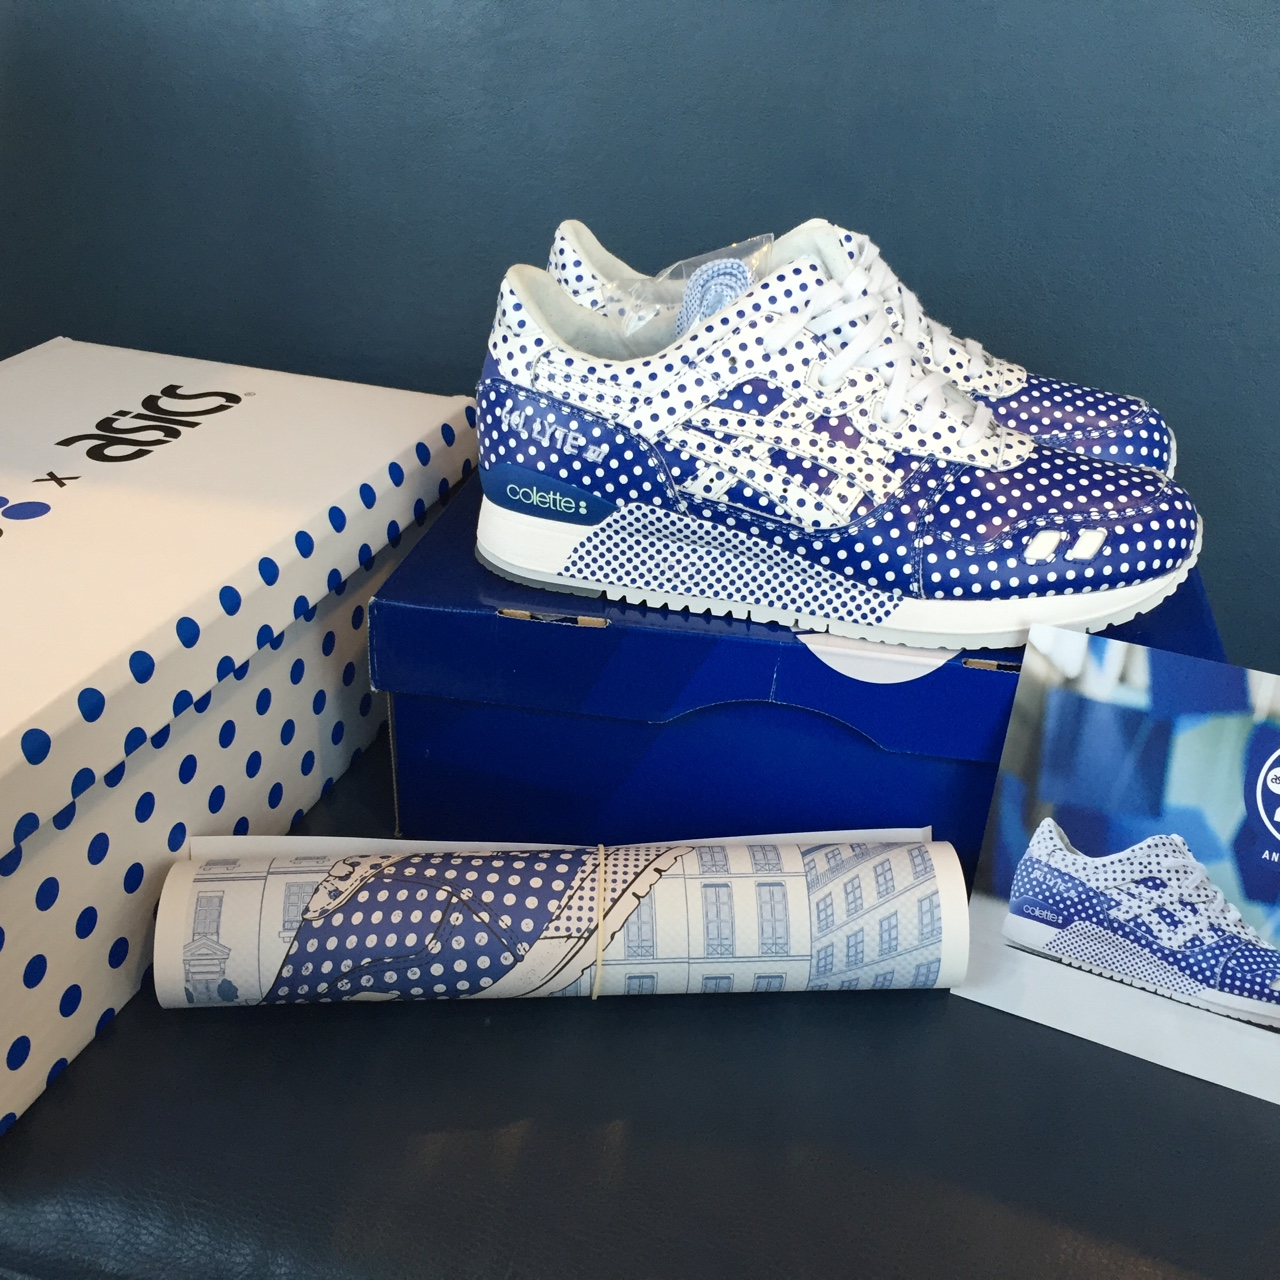 cheap for discount fd1eb d4515 Colette x Asics Gel Lyte III. Brand new in box. DS.... - Depop